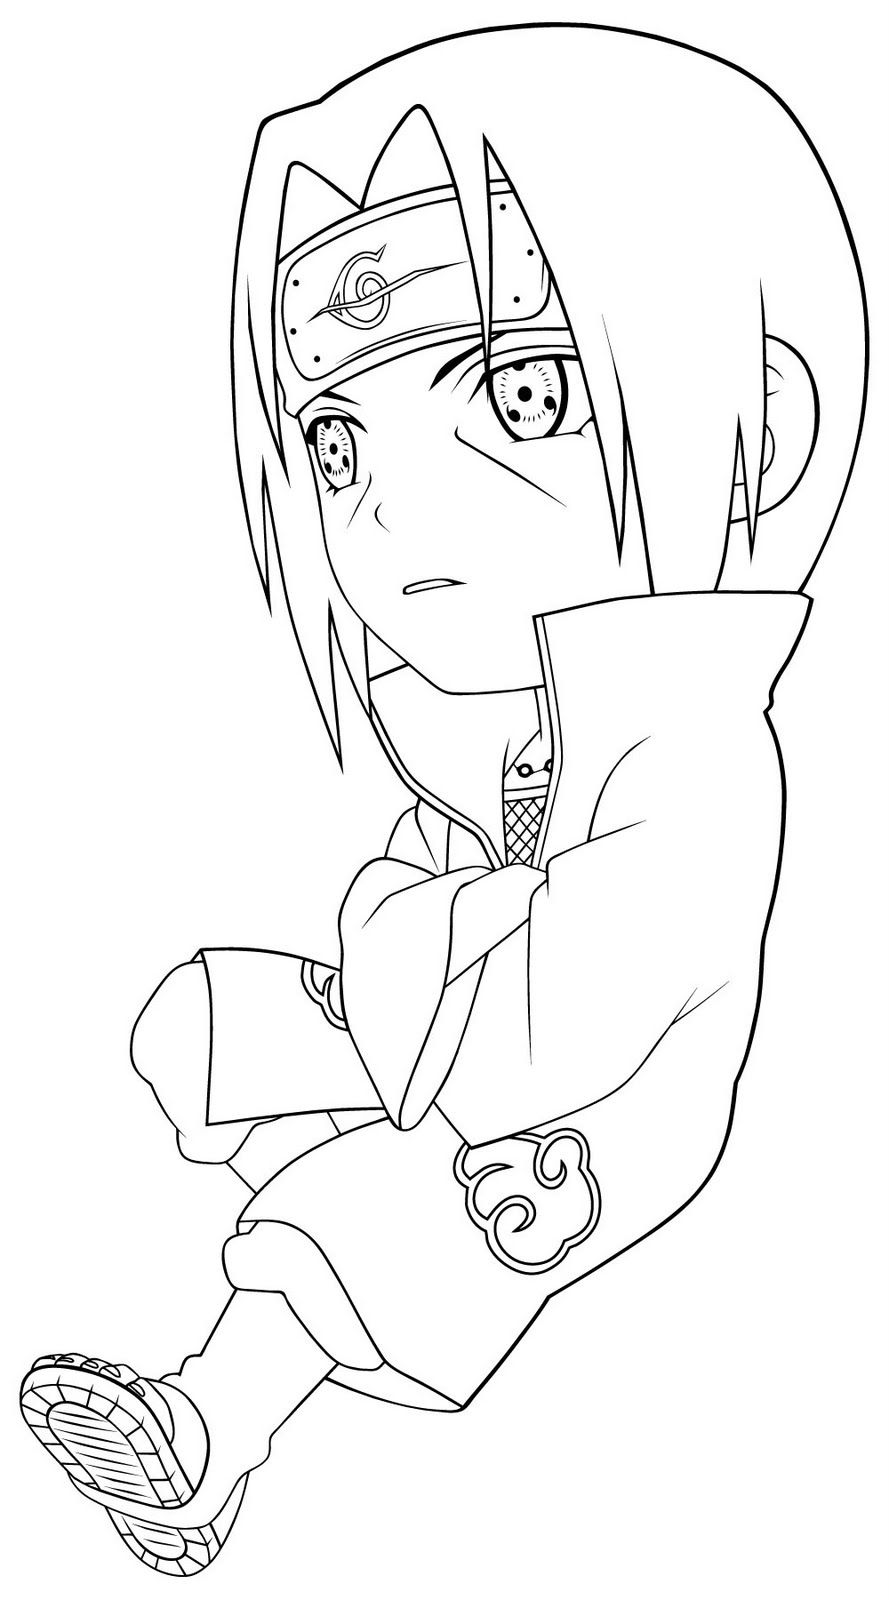 Free Printable Naruto Shippuden Coloring Pages Awesome Coloring